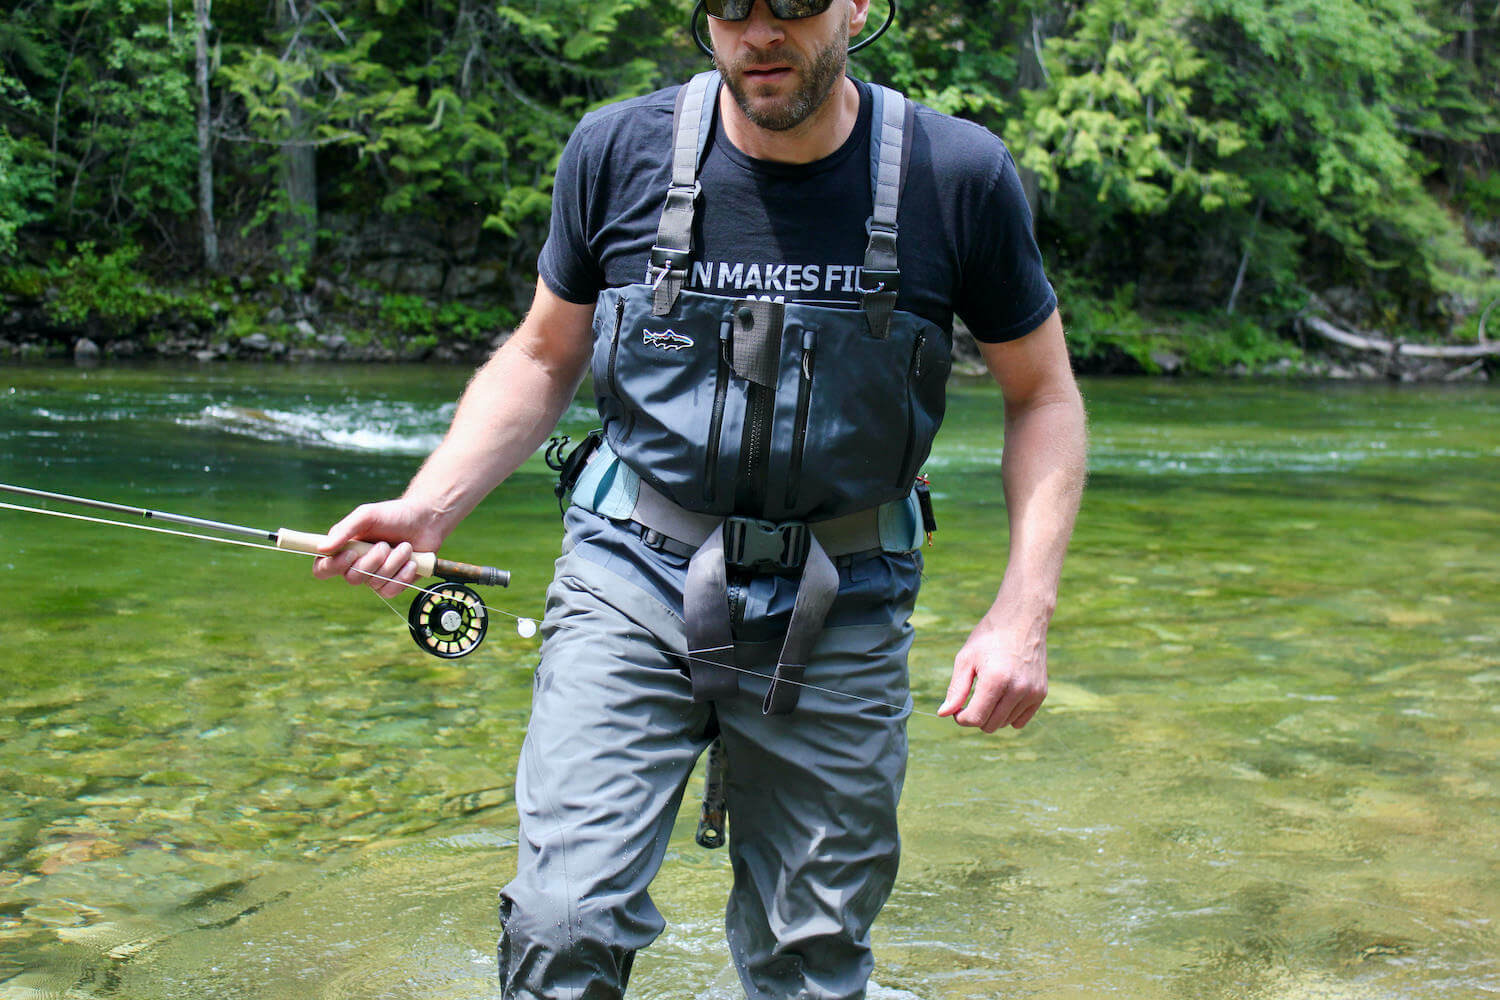 This best fishing waders image shows the author testing fishing waders on a river while fishing.